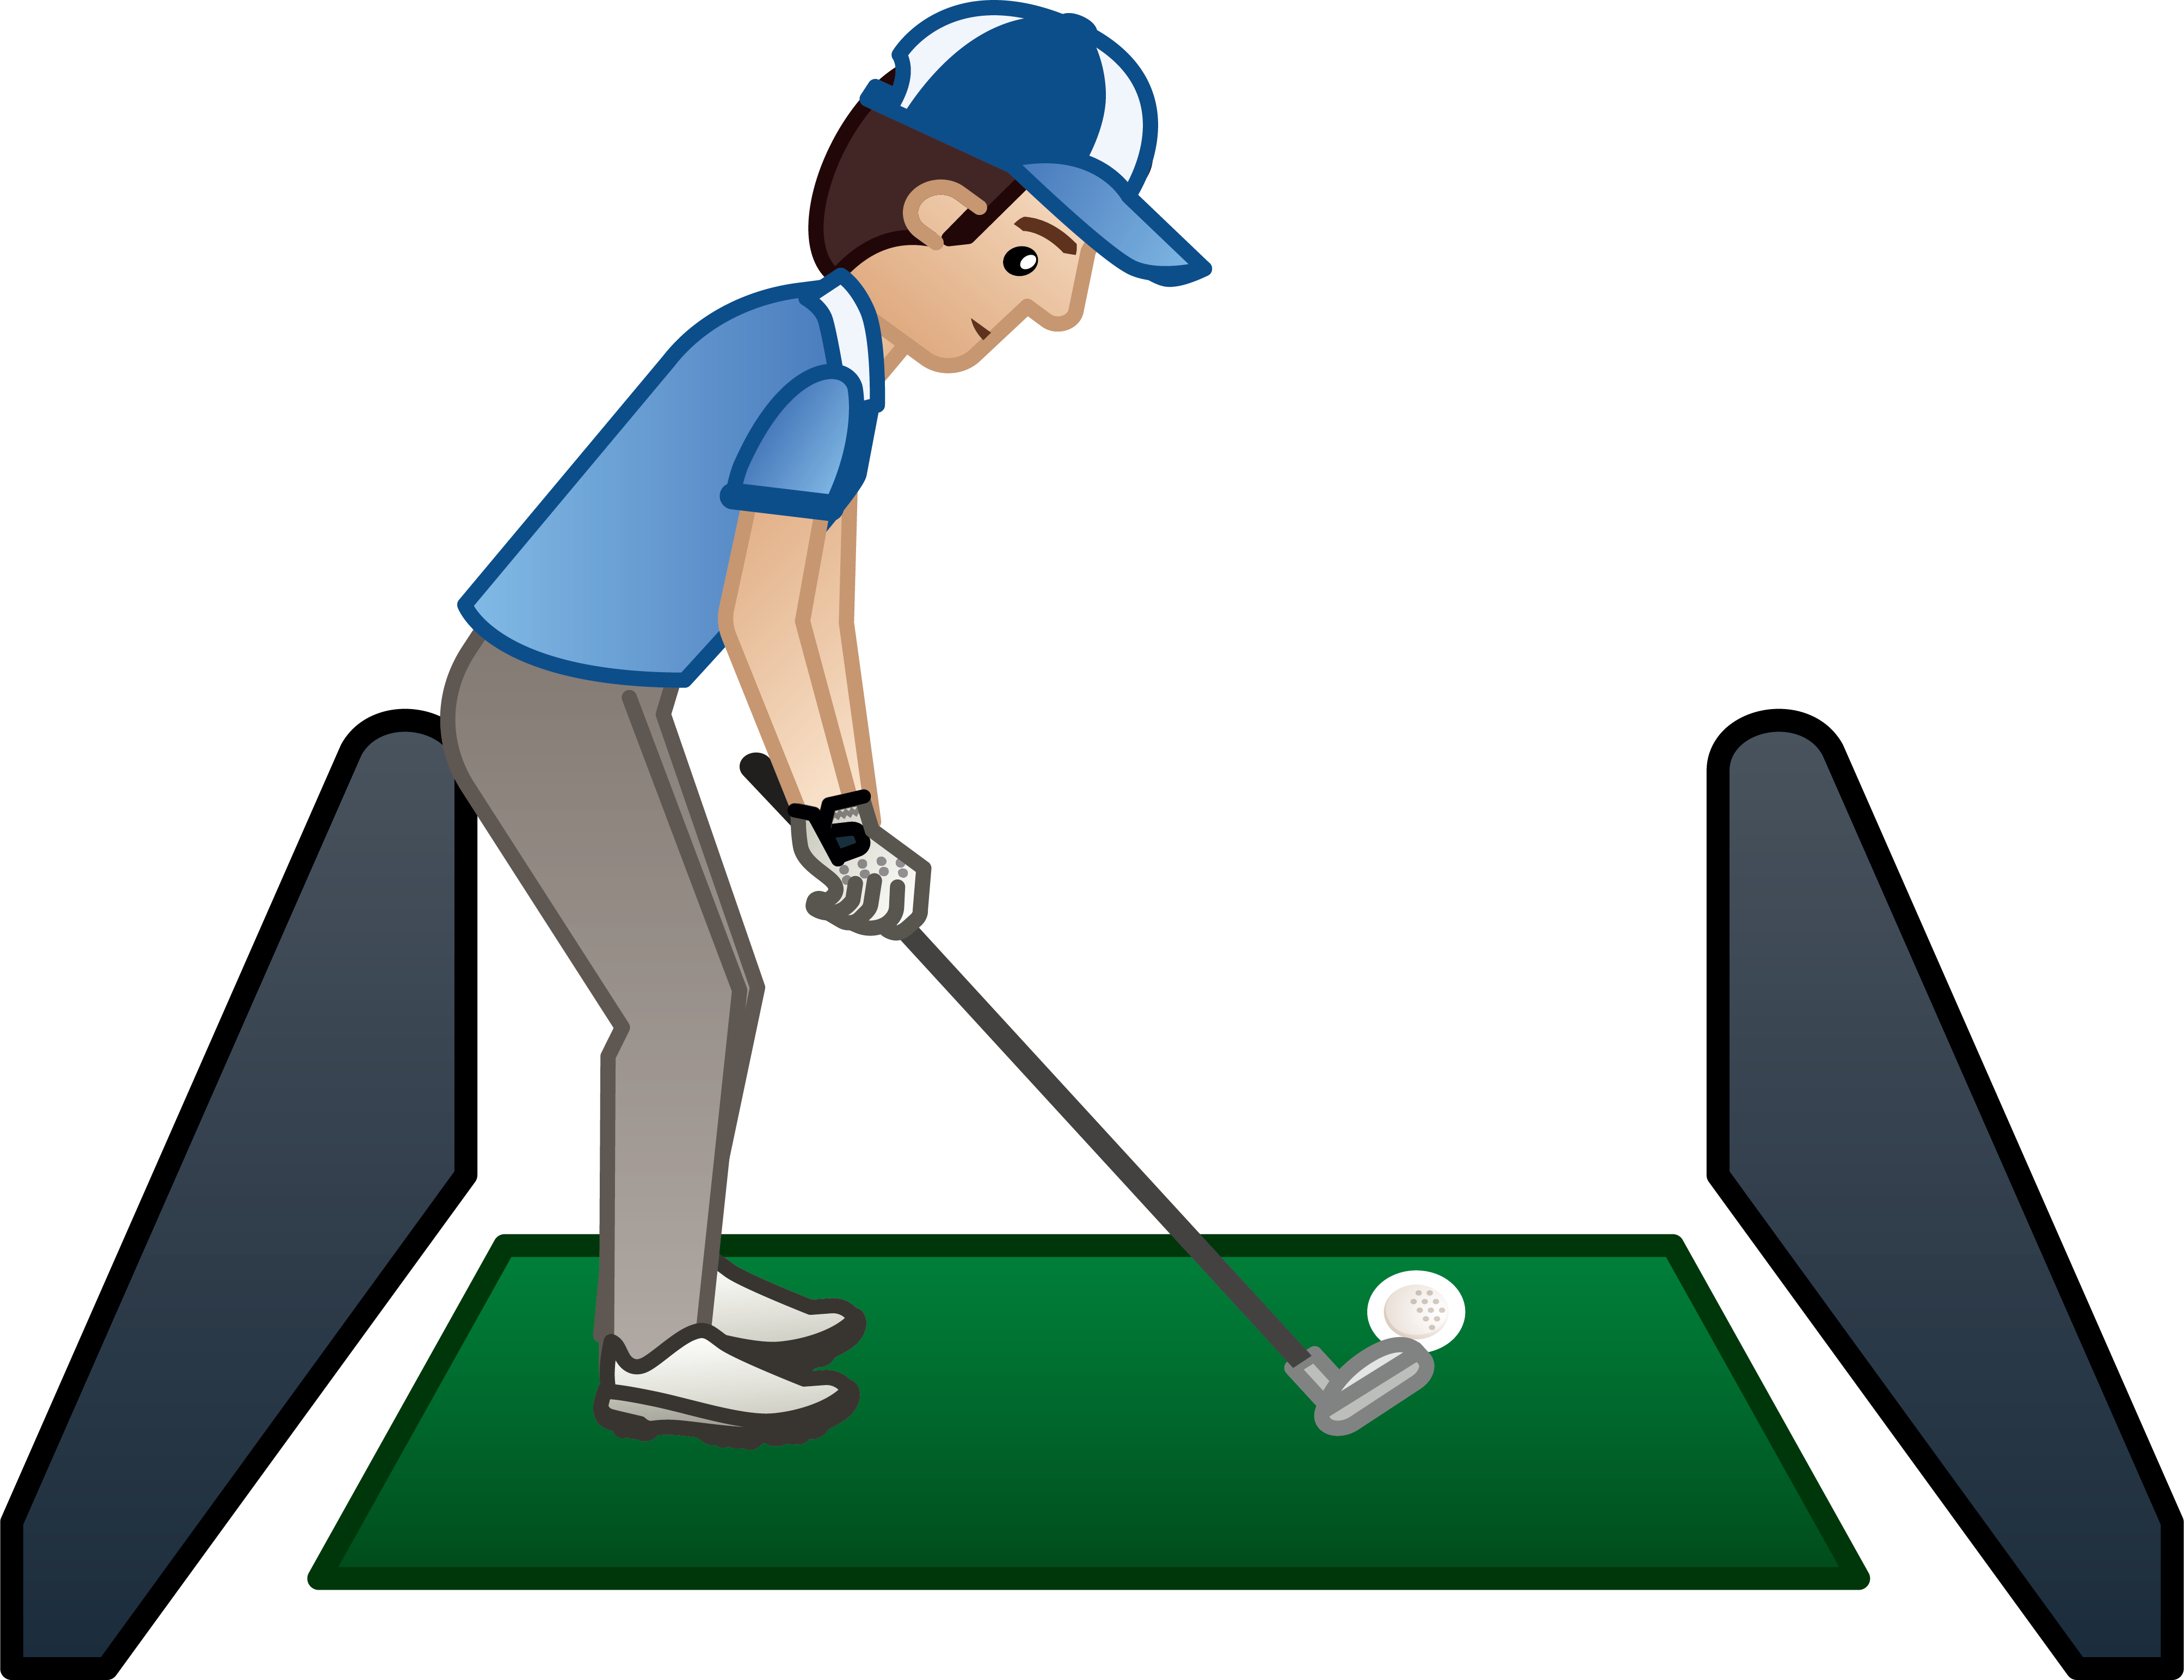 Football practice clipart clipart transparent library Golf Ball Driving range Clip art - Golf practice field 4013*3087 ... clipart transparent library